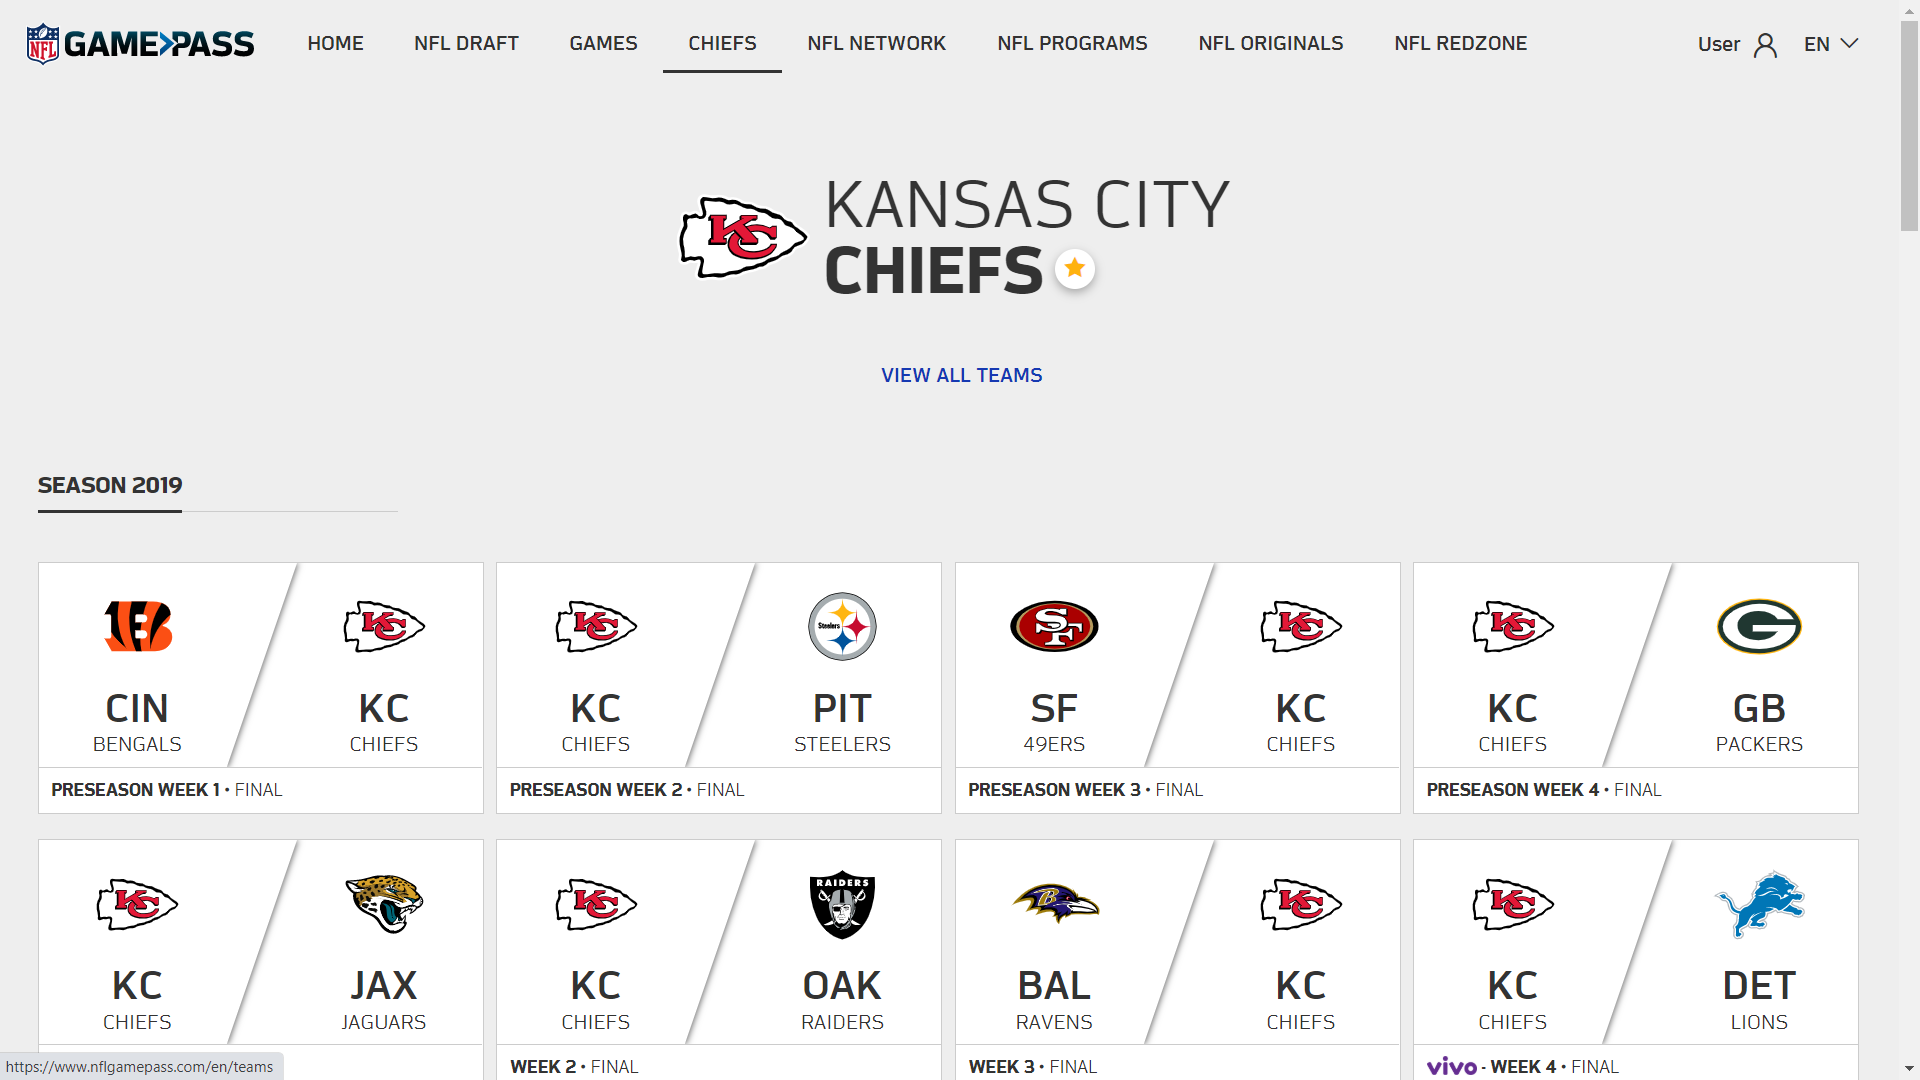 NFLGP-TEAMS2.png